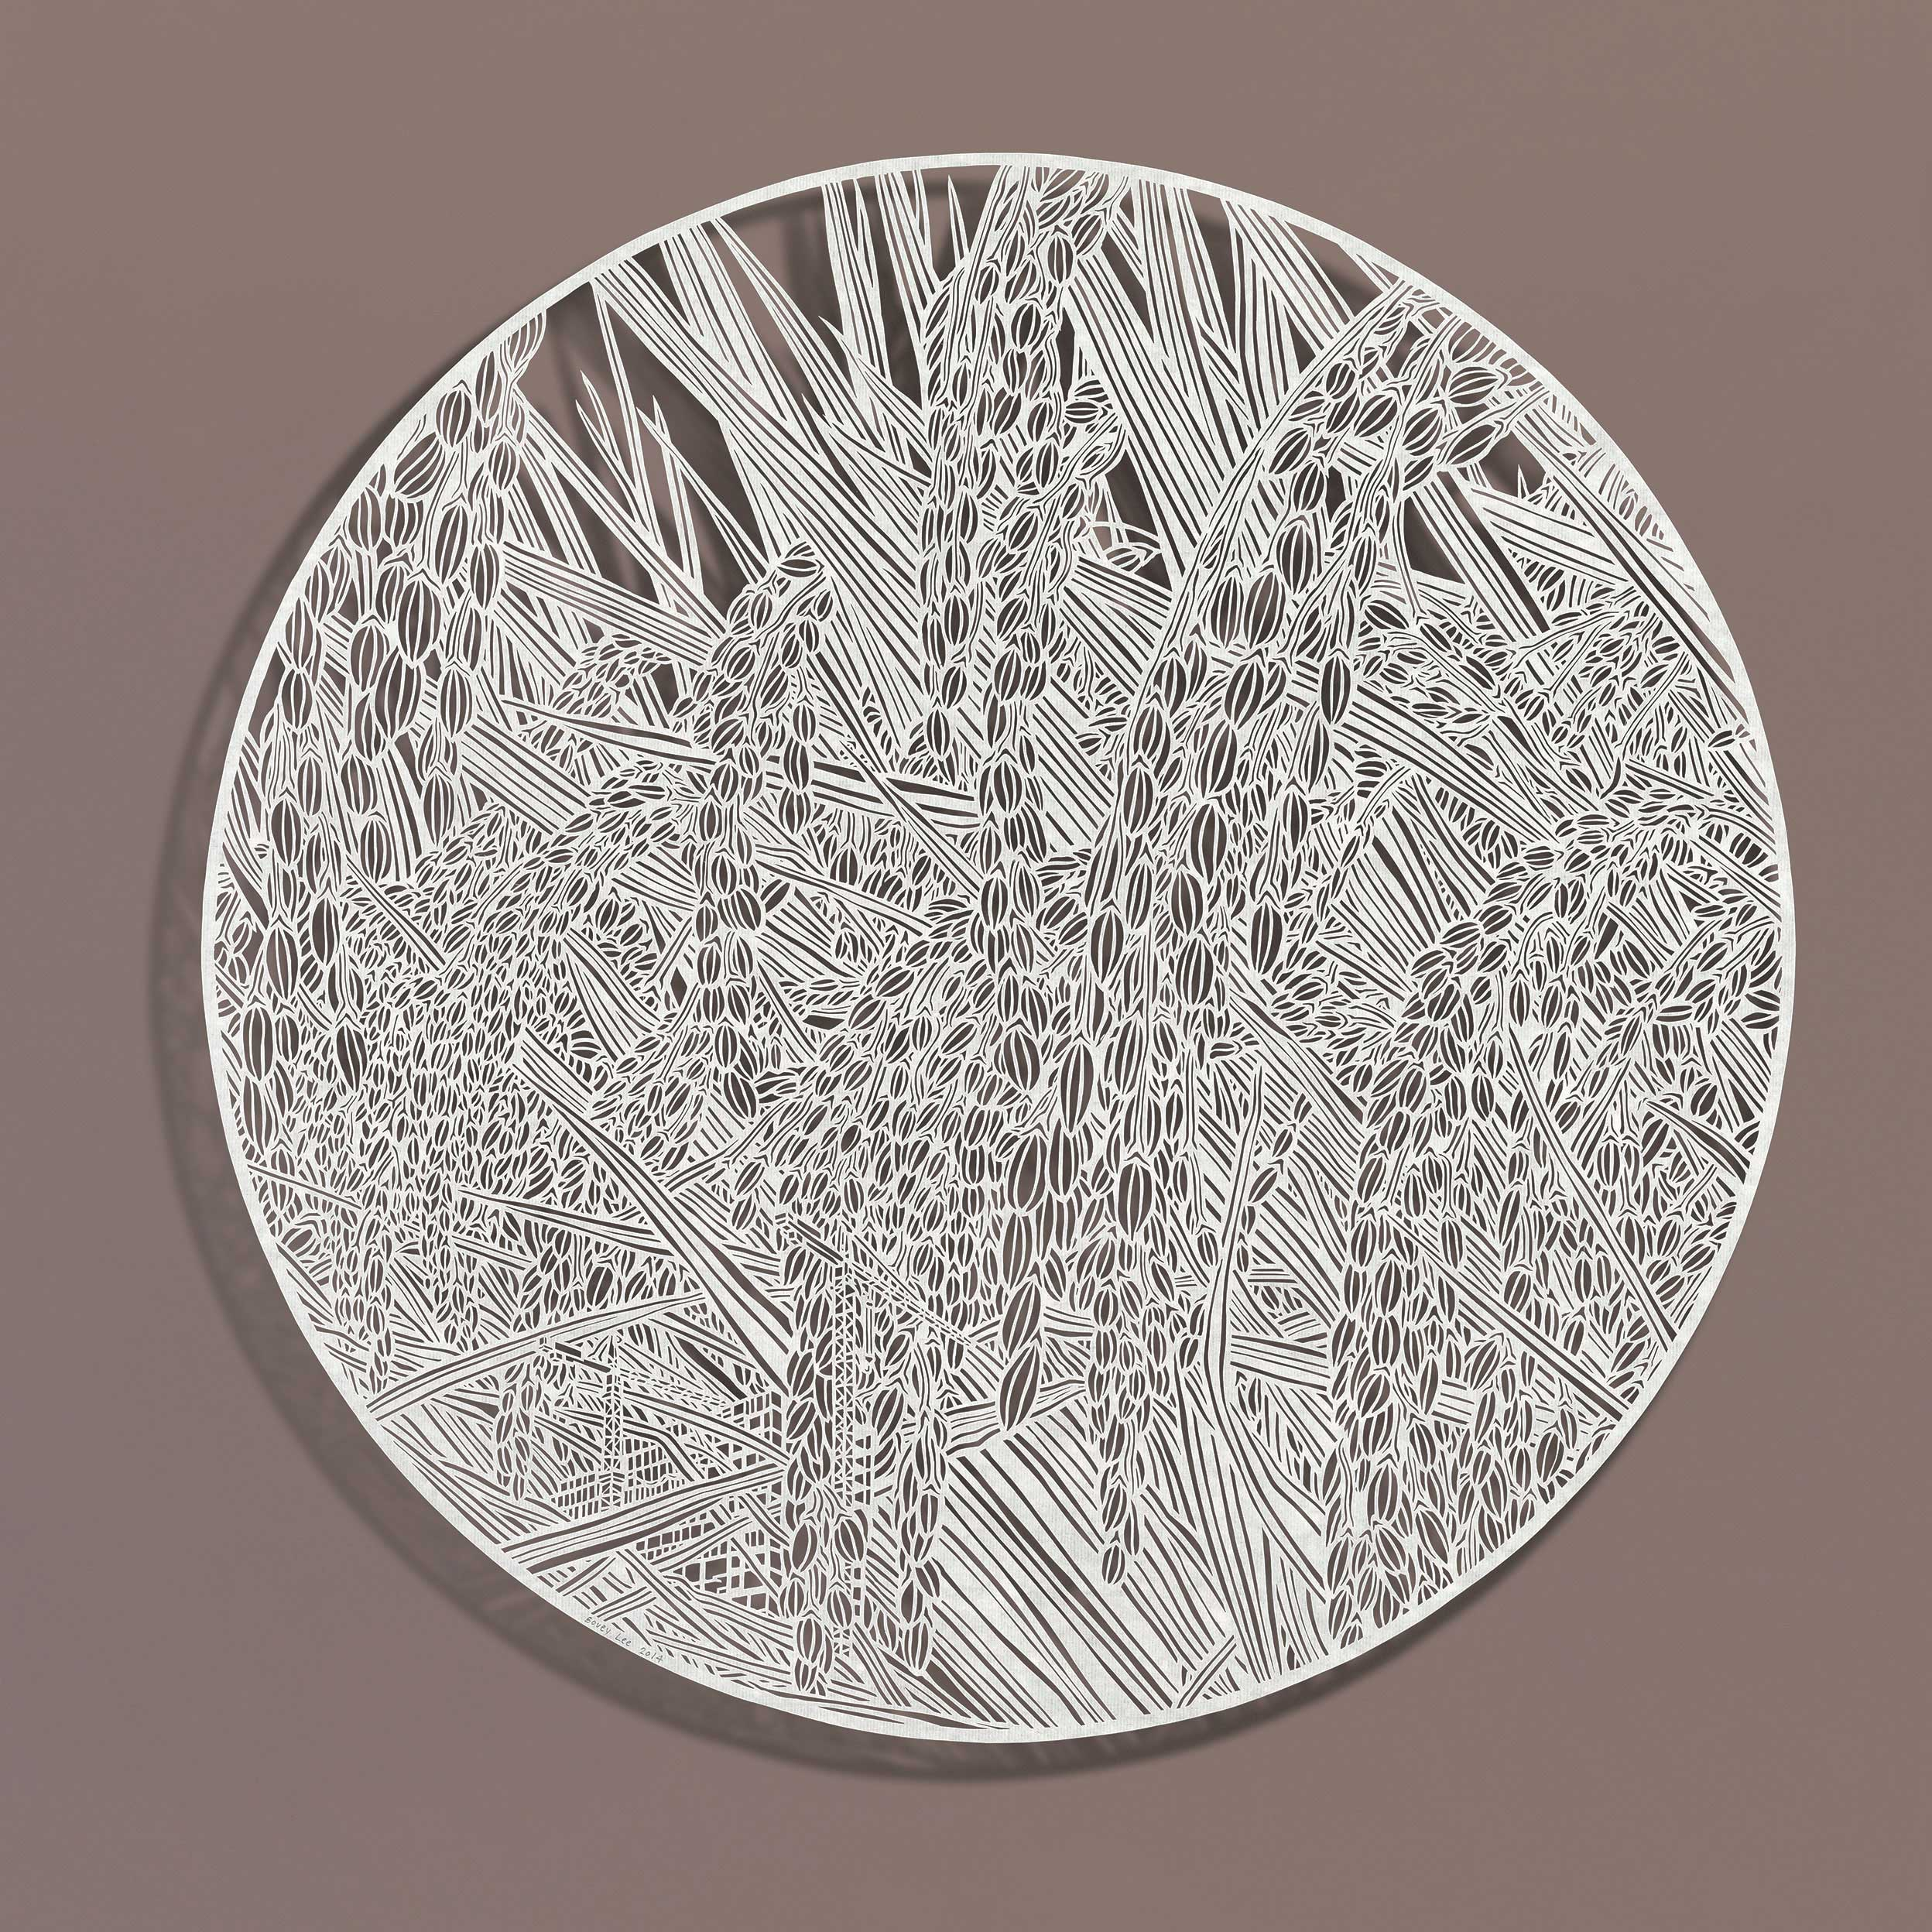 Bovey LEE  Outgrow Rice Grains  2014 Cut paper 52 cm Ø